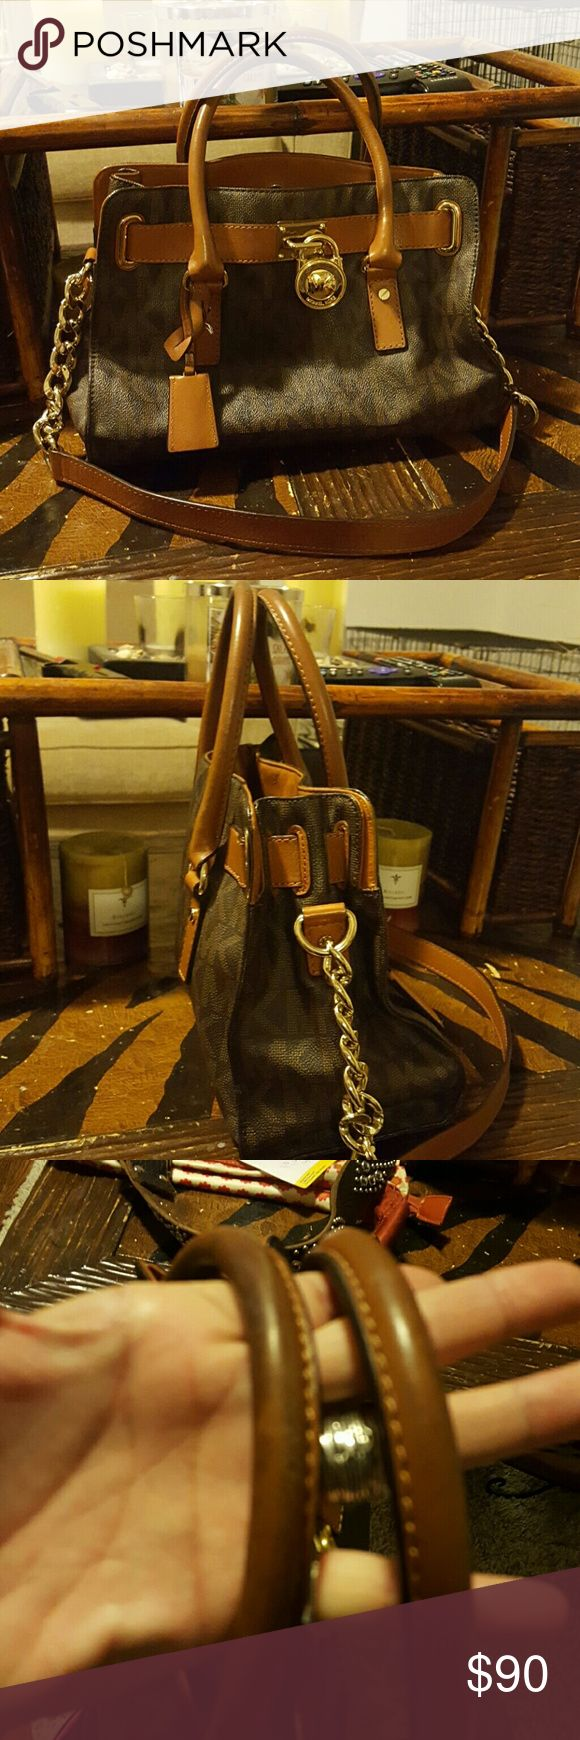 AUTHENTIC MICHEAL KORS HANDBAG IN EUC Authentic dark and light brown satchel with long strap 14w, 14t, 5d! Beautiful bag Bags Satchels